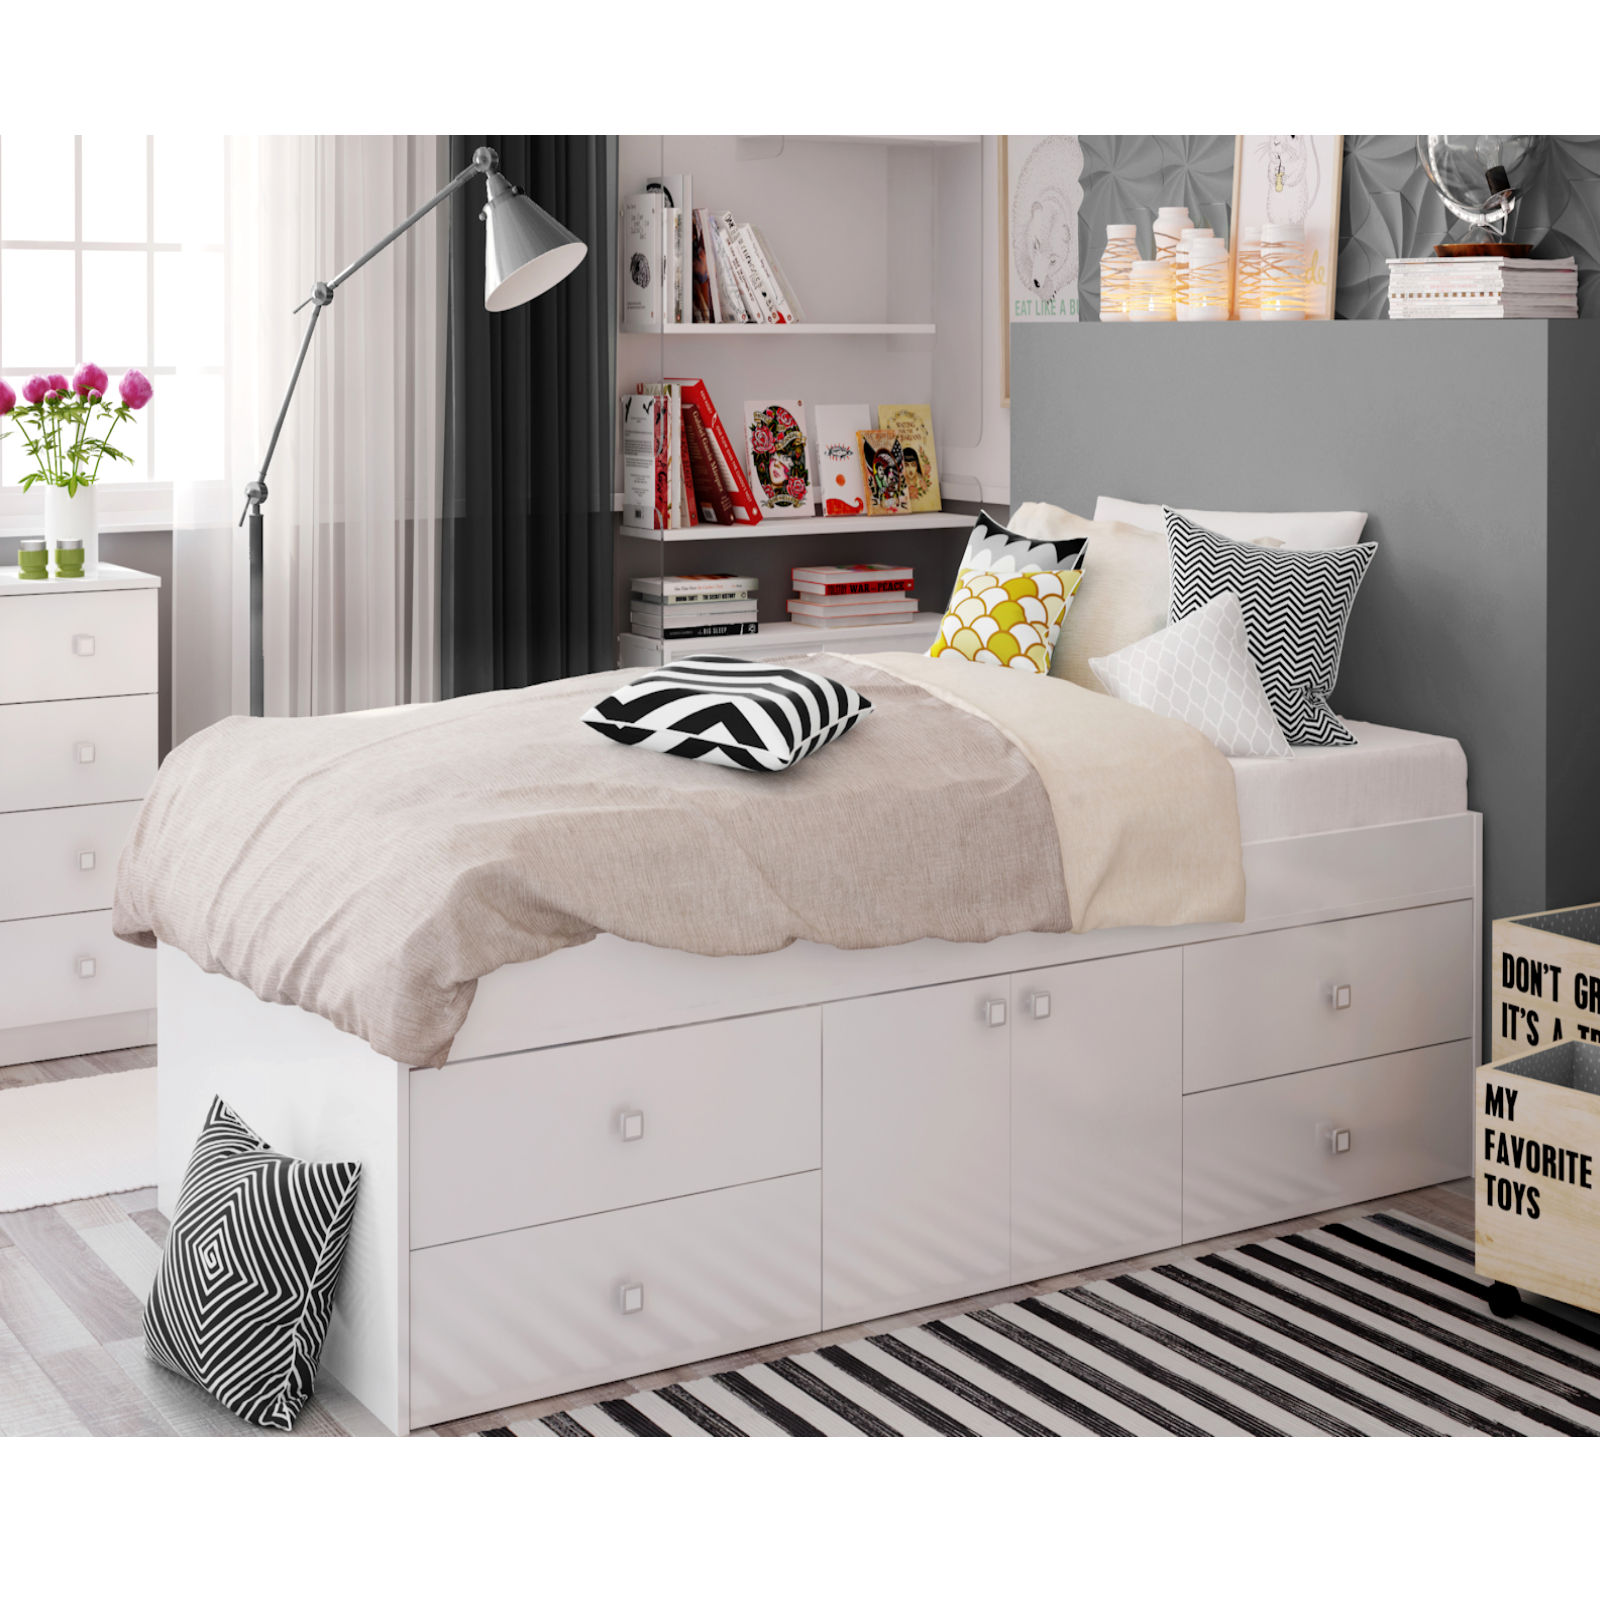 rug pink toddler drawers girls white bedroom for drawer bed crib luxury flowers with stickers small wall cabinet